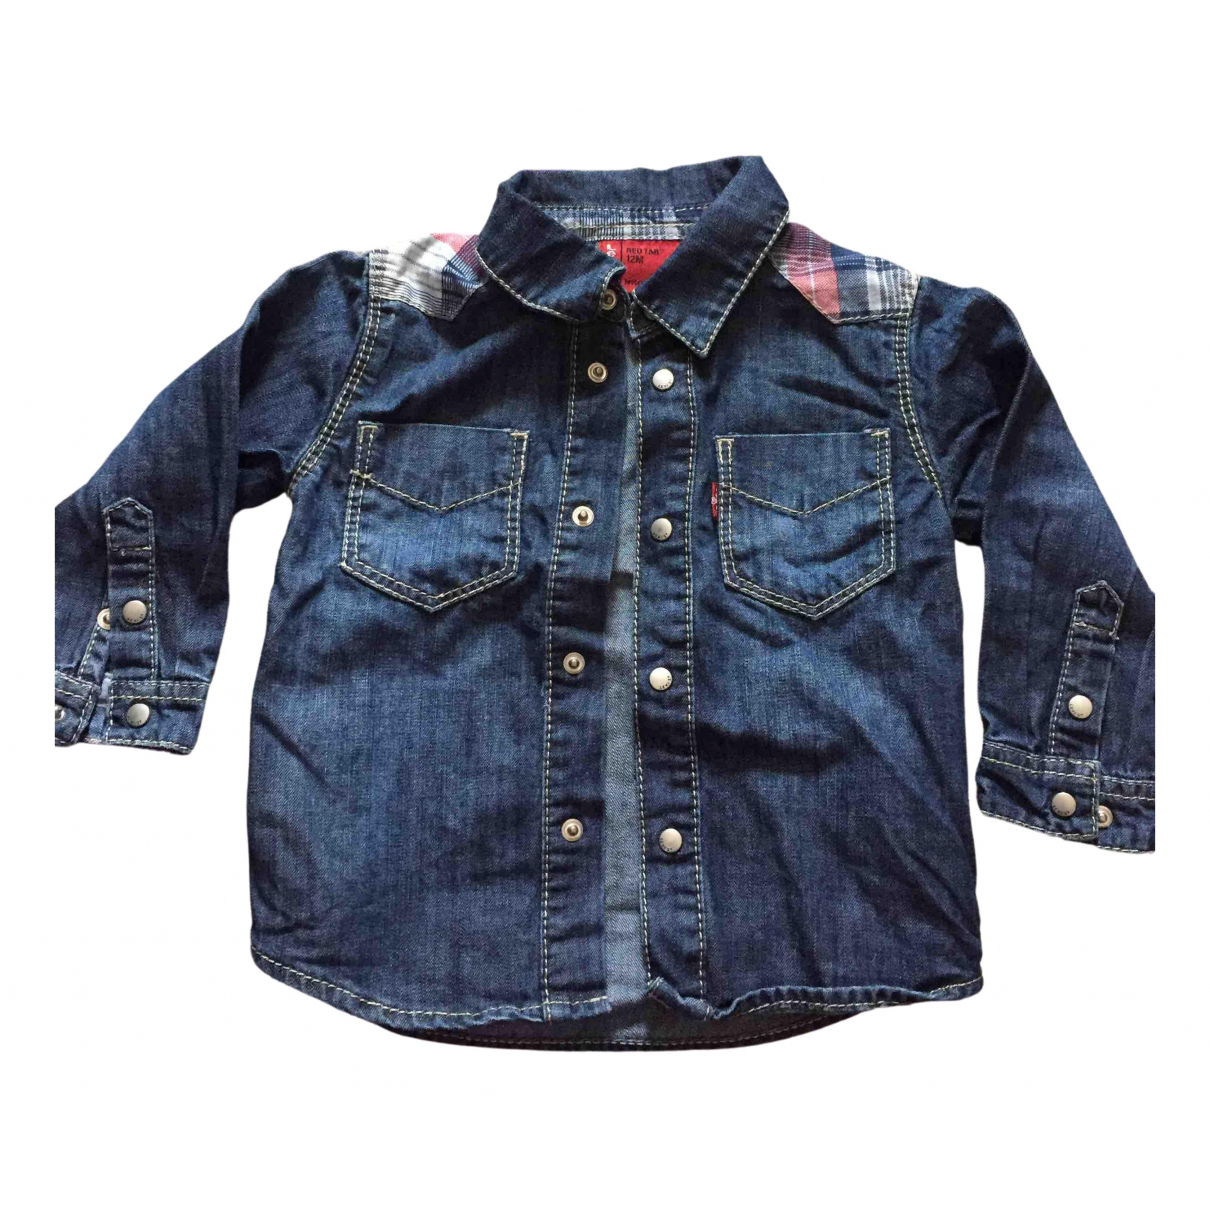 Levi's N Blue Cotton  top for Kids 12 months - up to 74cm FR